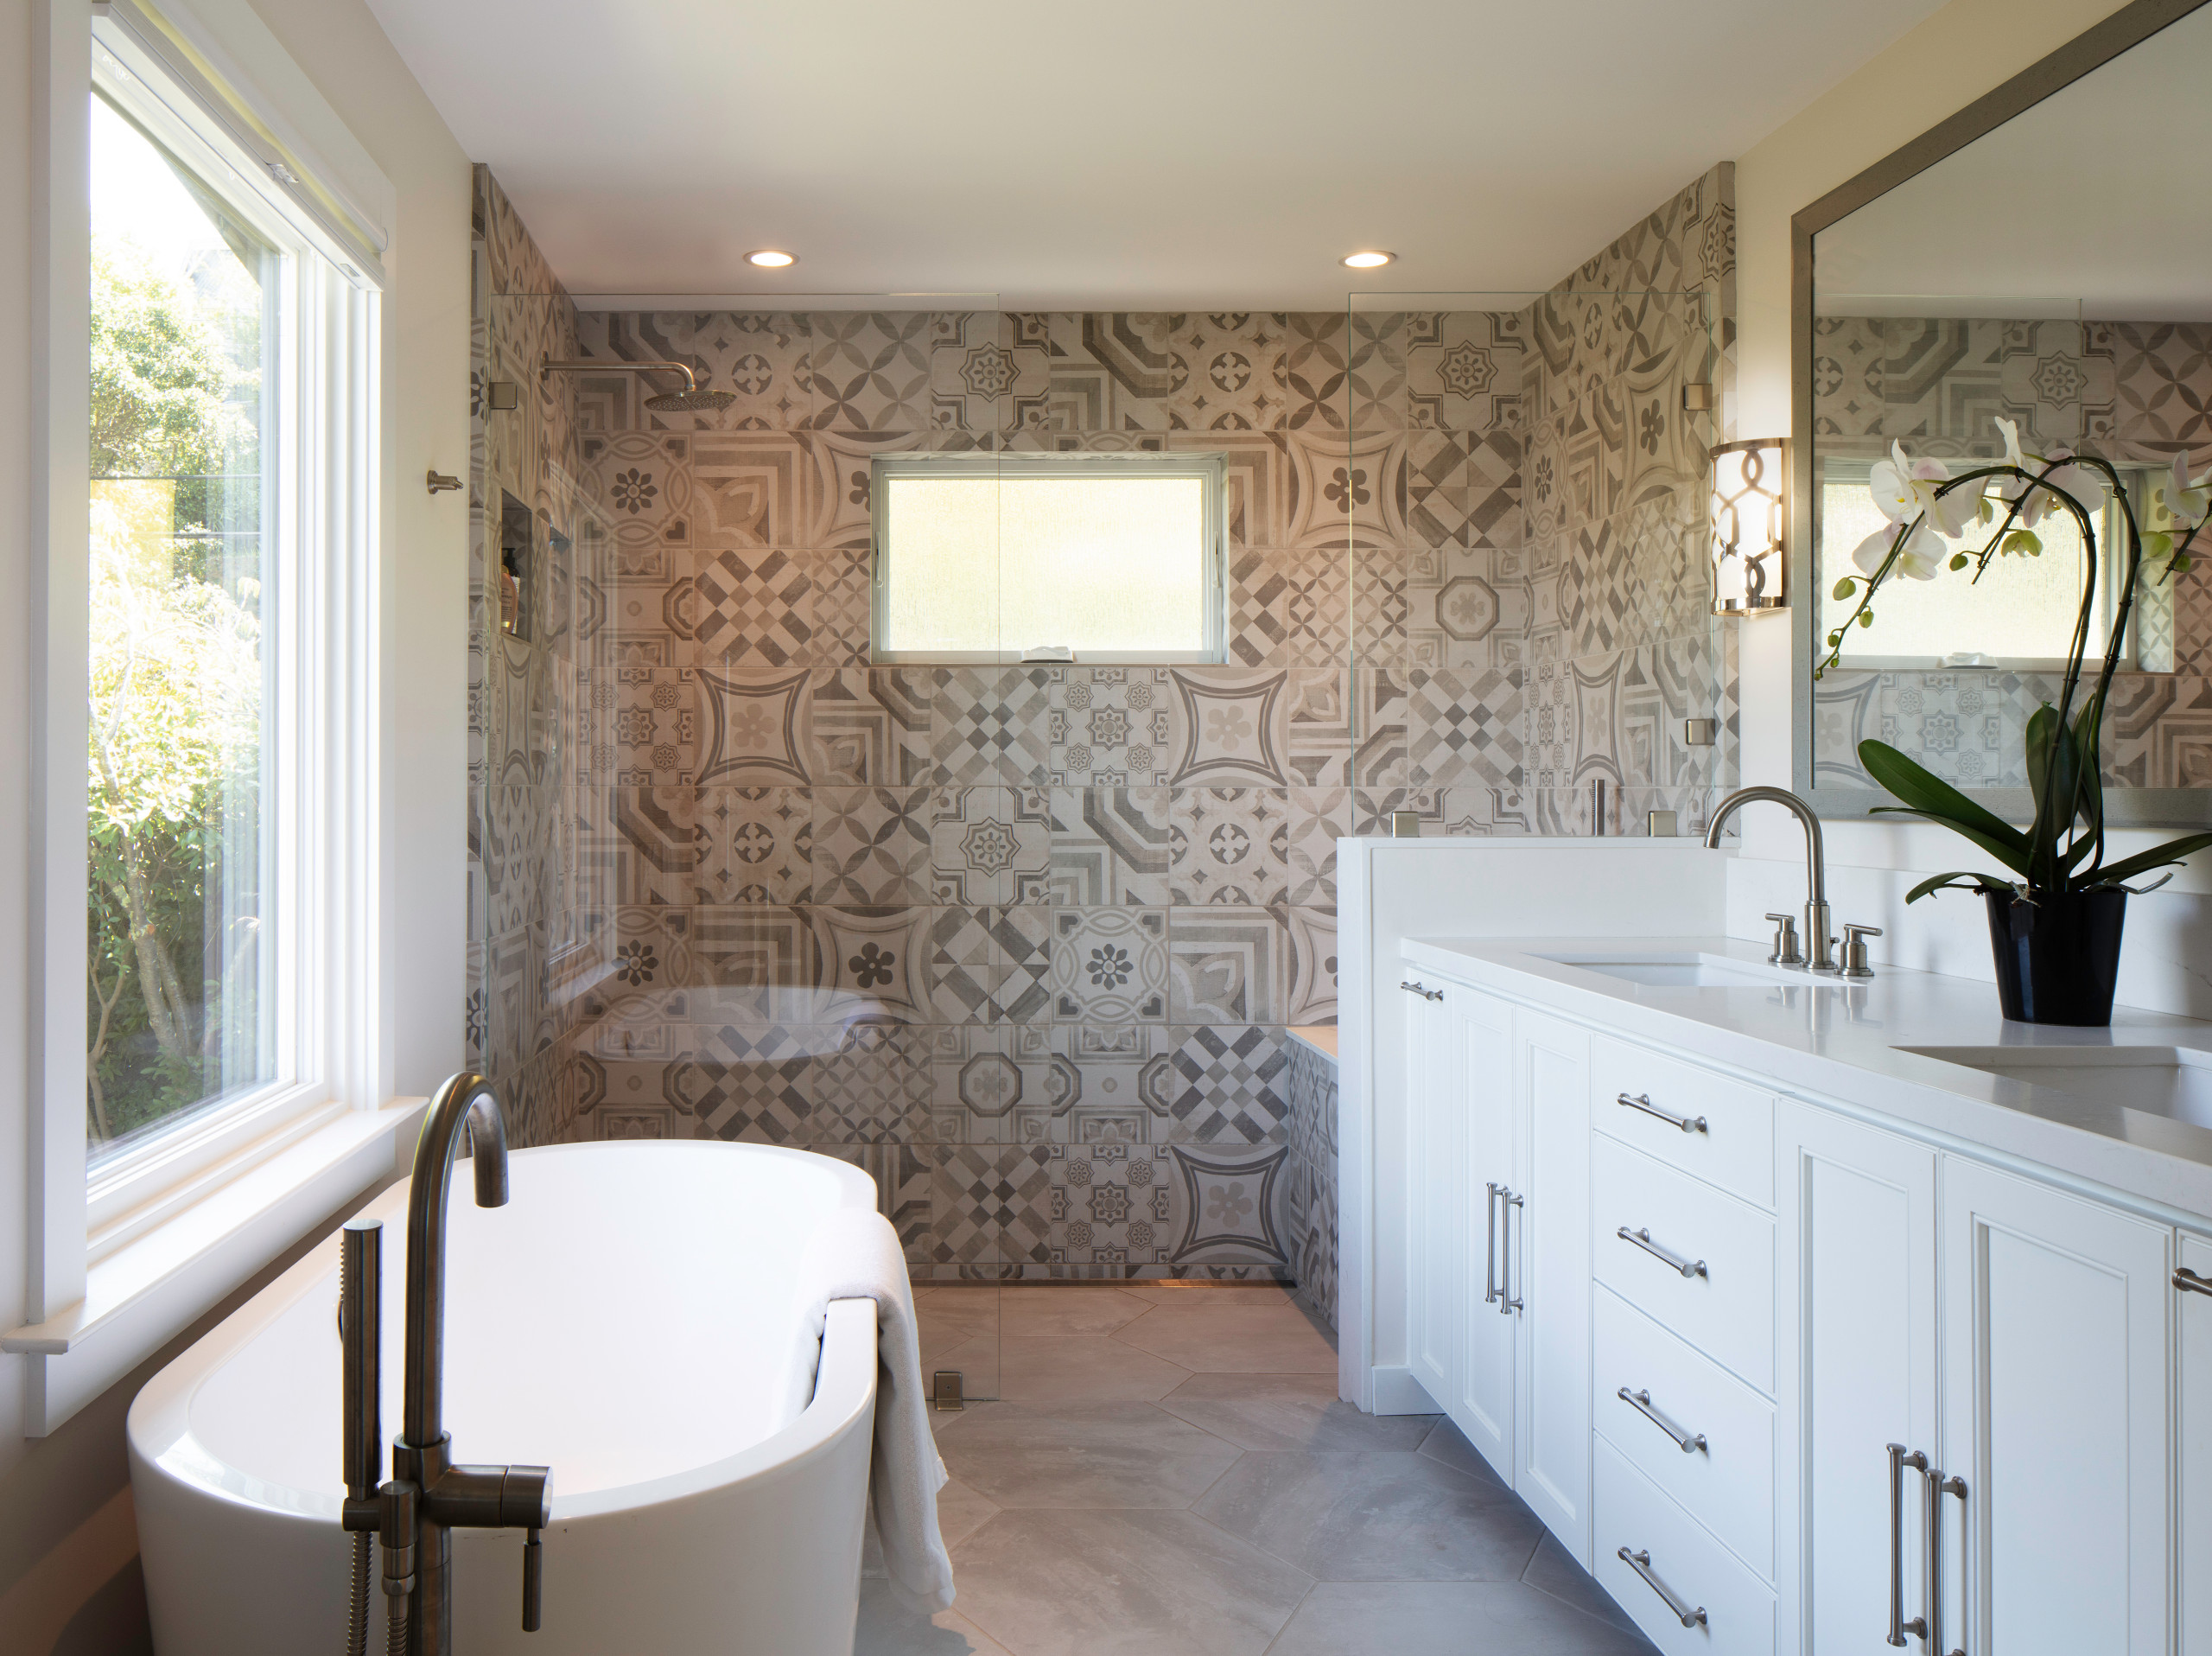 75 Beautiful Beige Tile Bathroom Pictures Ideas November 2020 Houzz